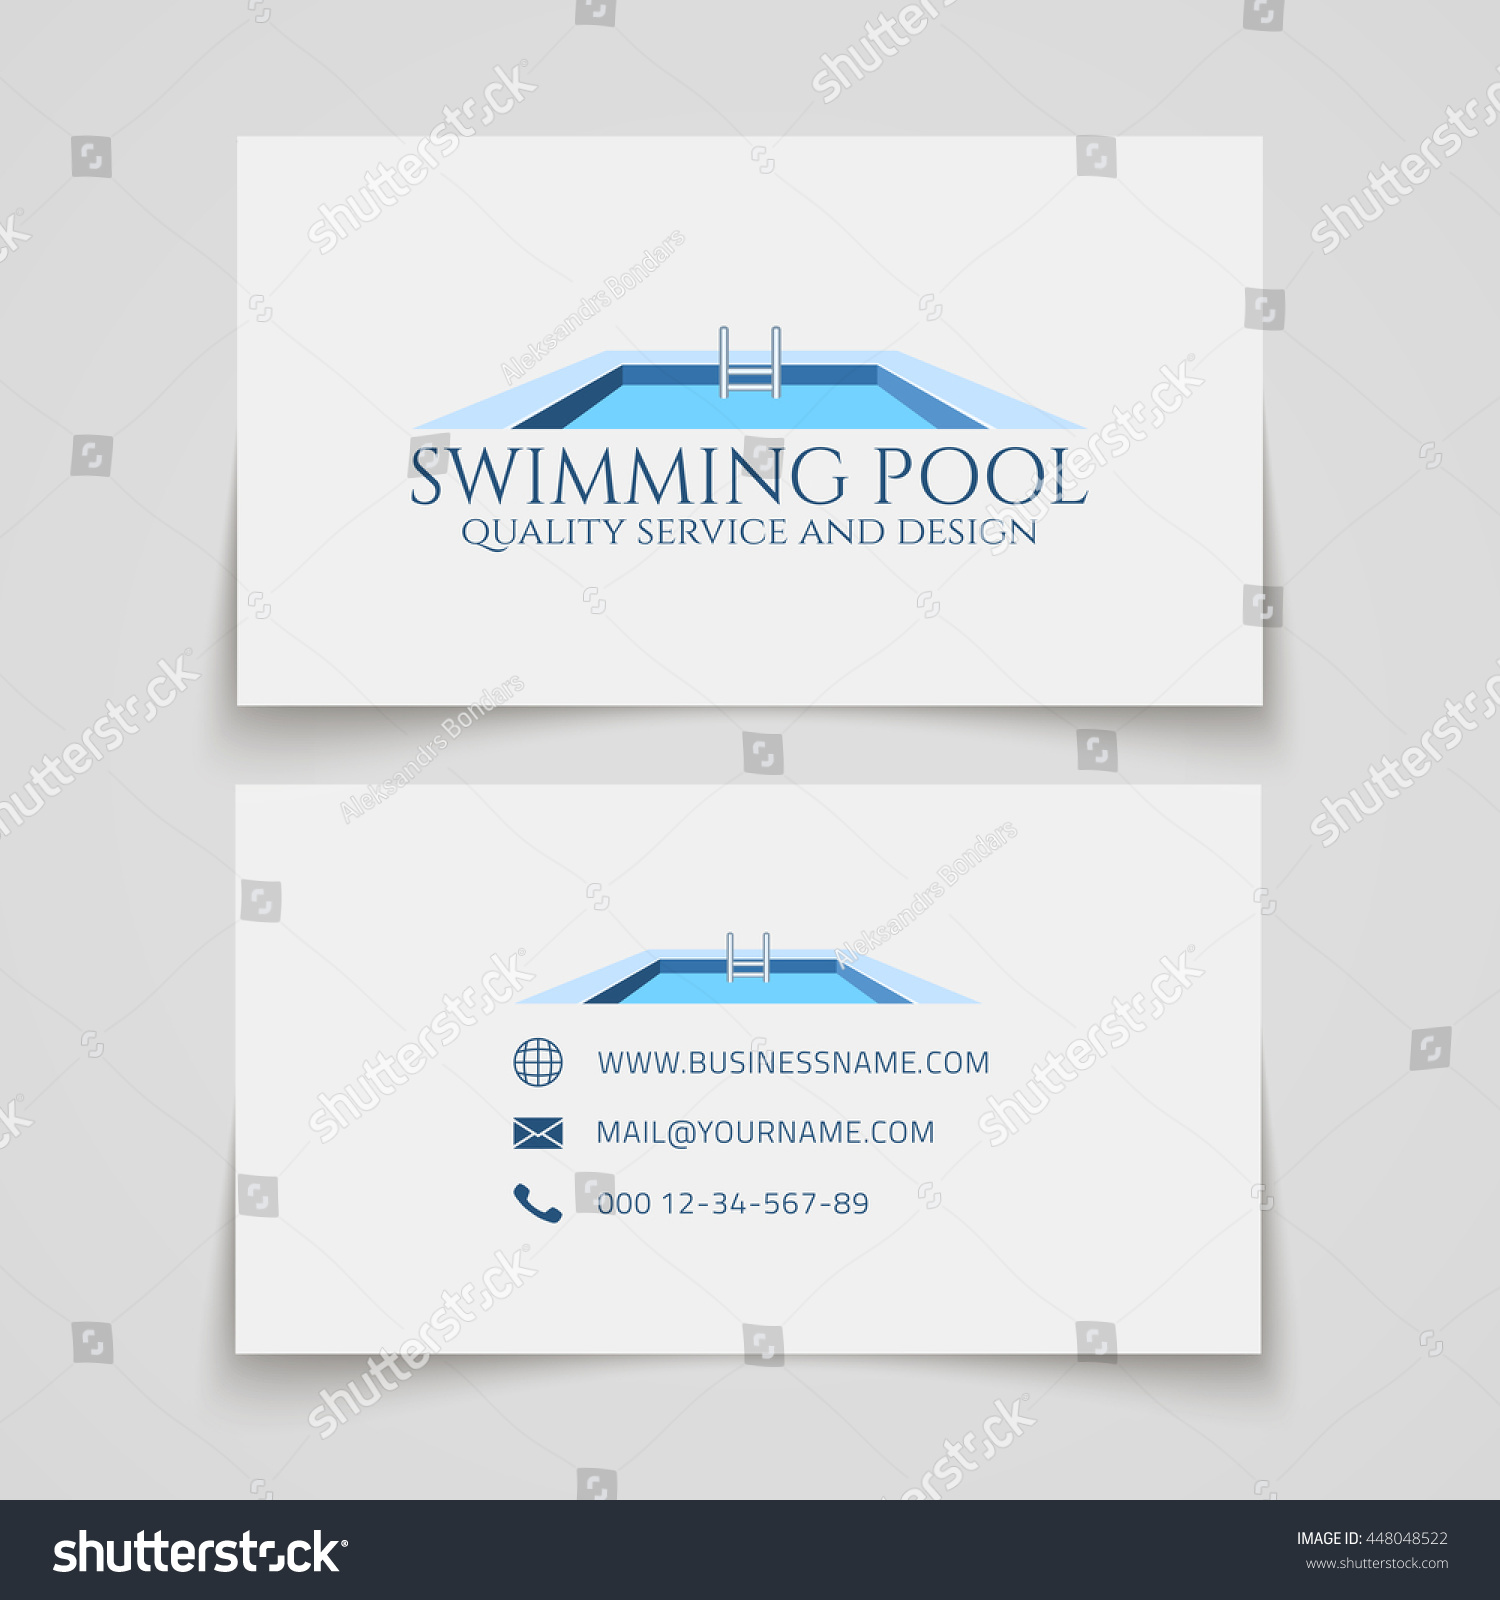 Business Card Template Swimming Pool Quality Stock Vector